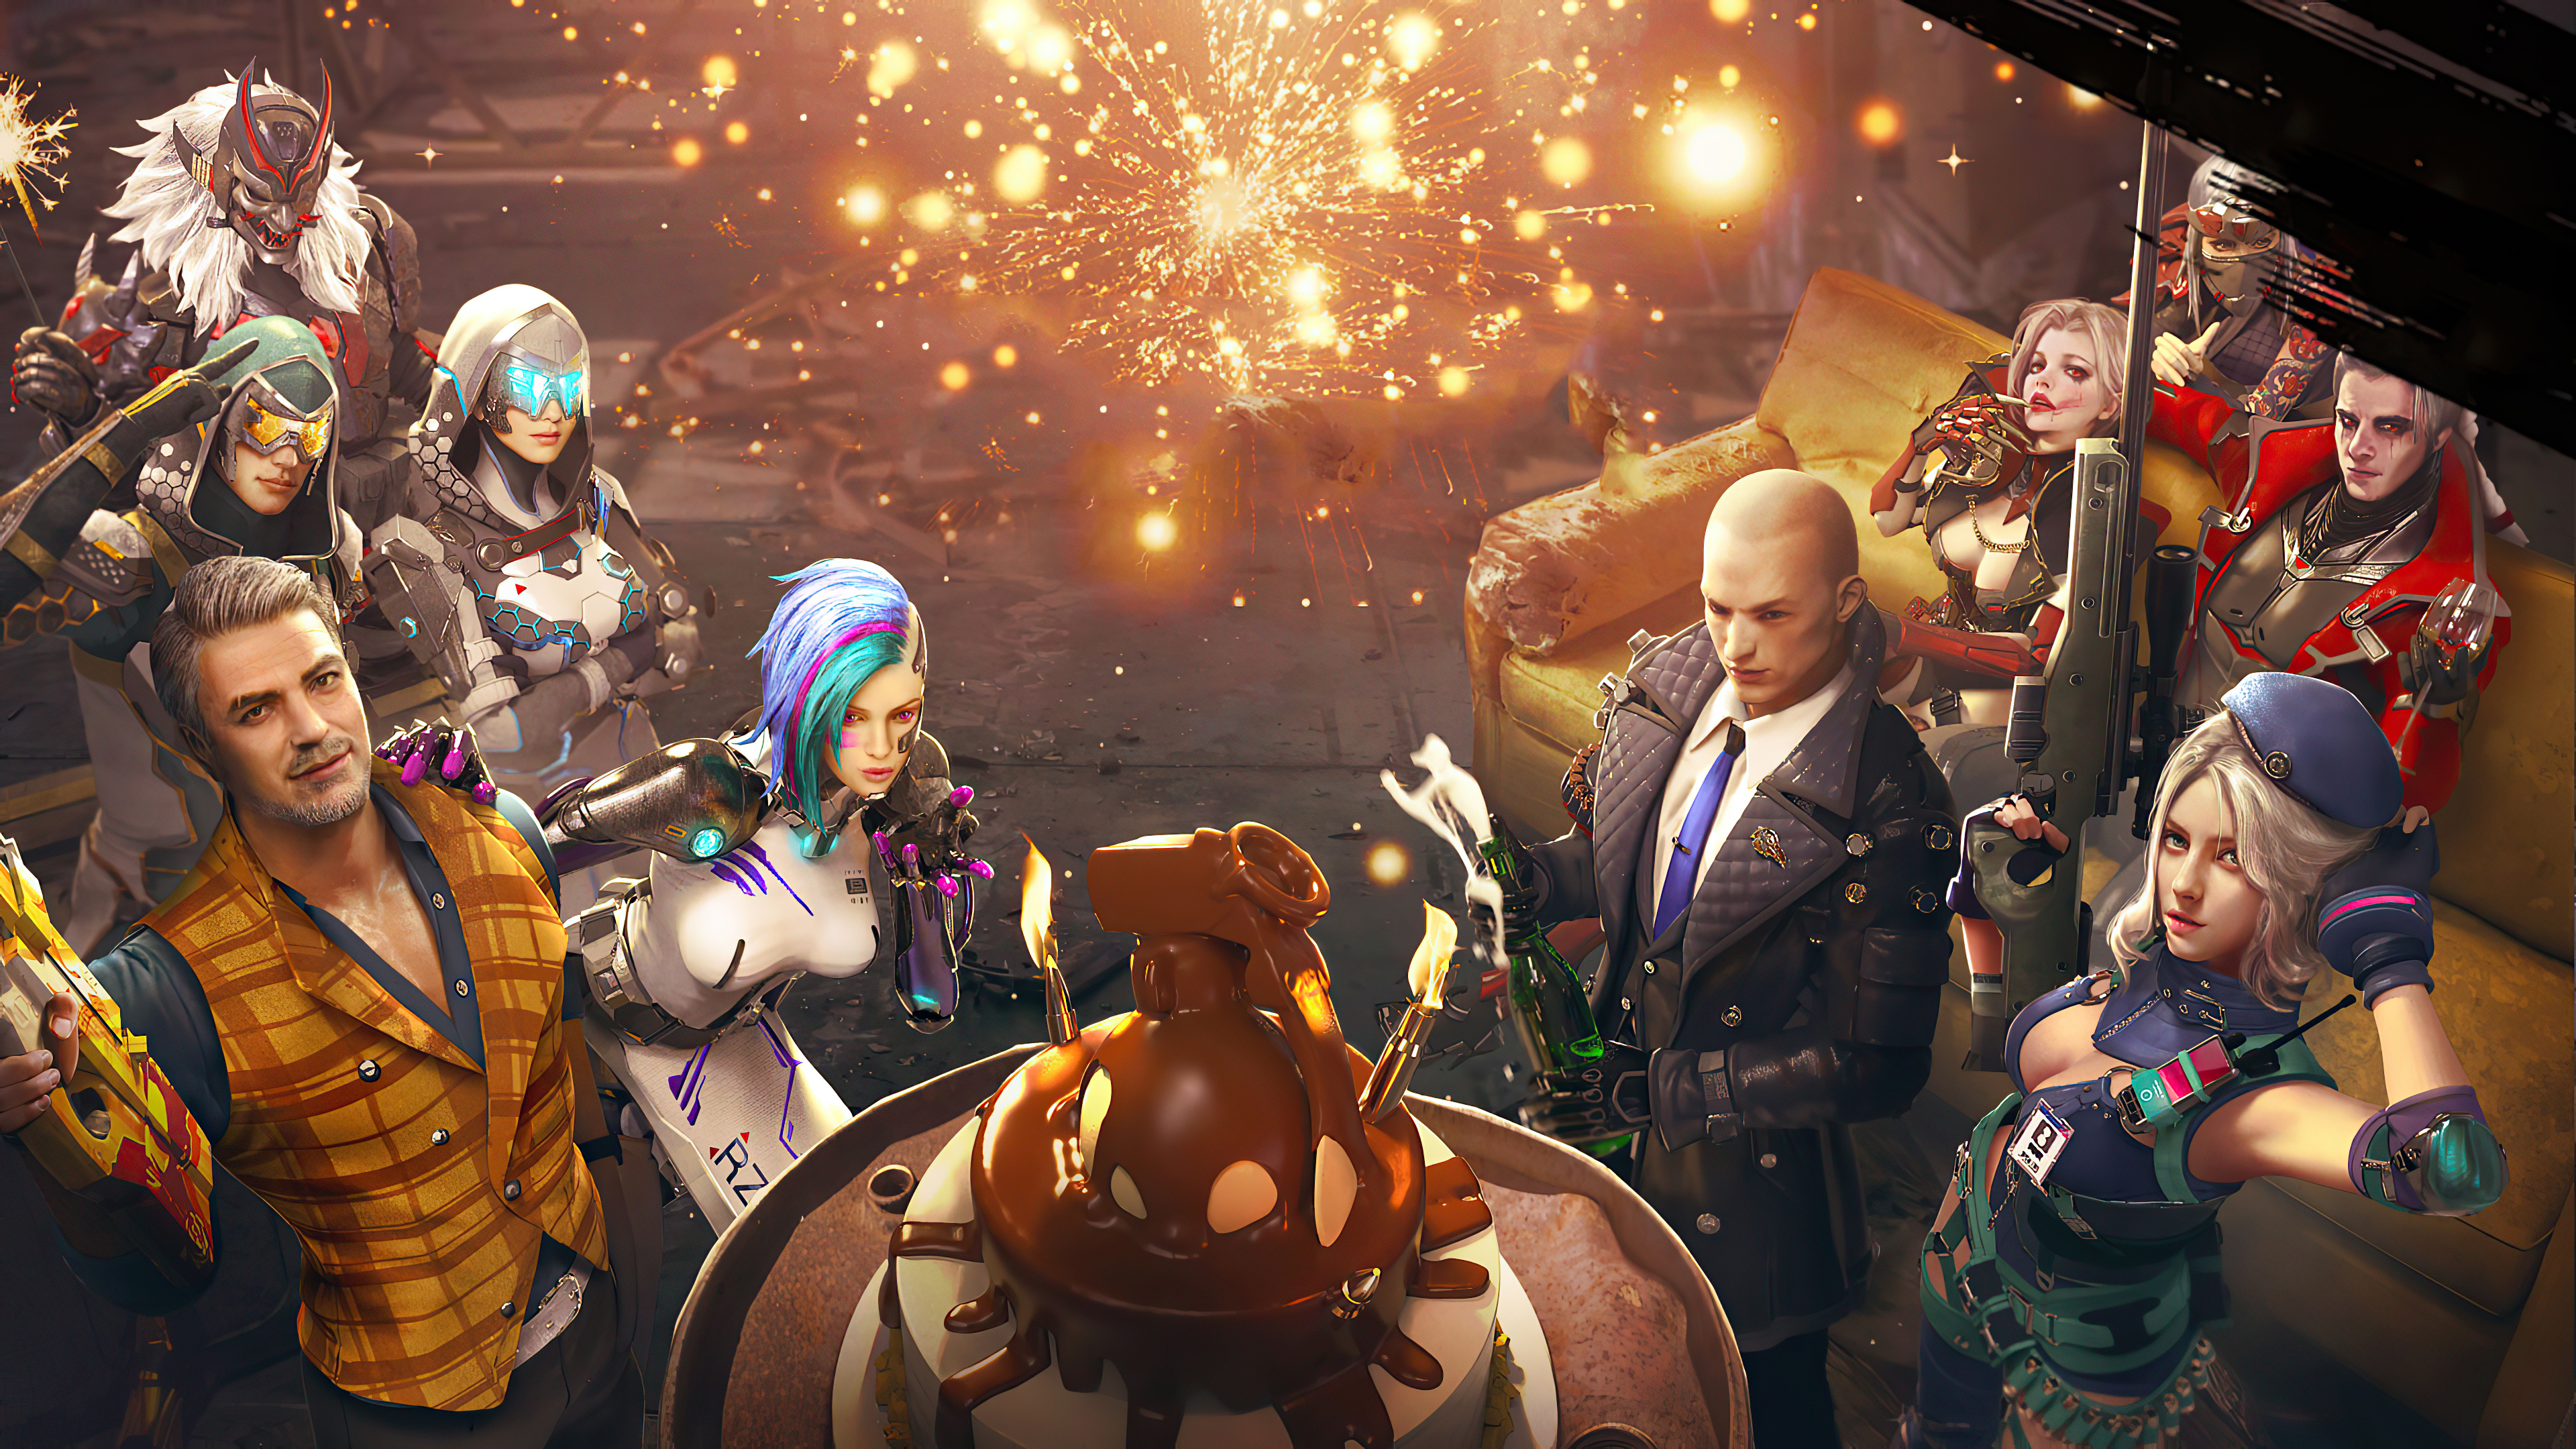 Garena Free Fire Anniversary Hd Games 4k Wallpapers Images Backgrounds Photos And Pictures